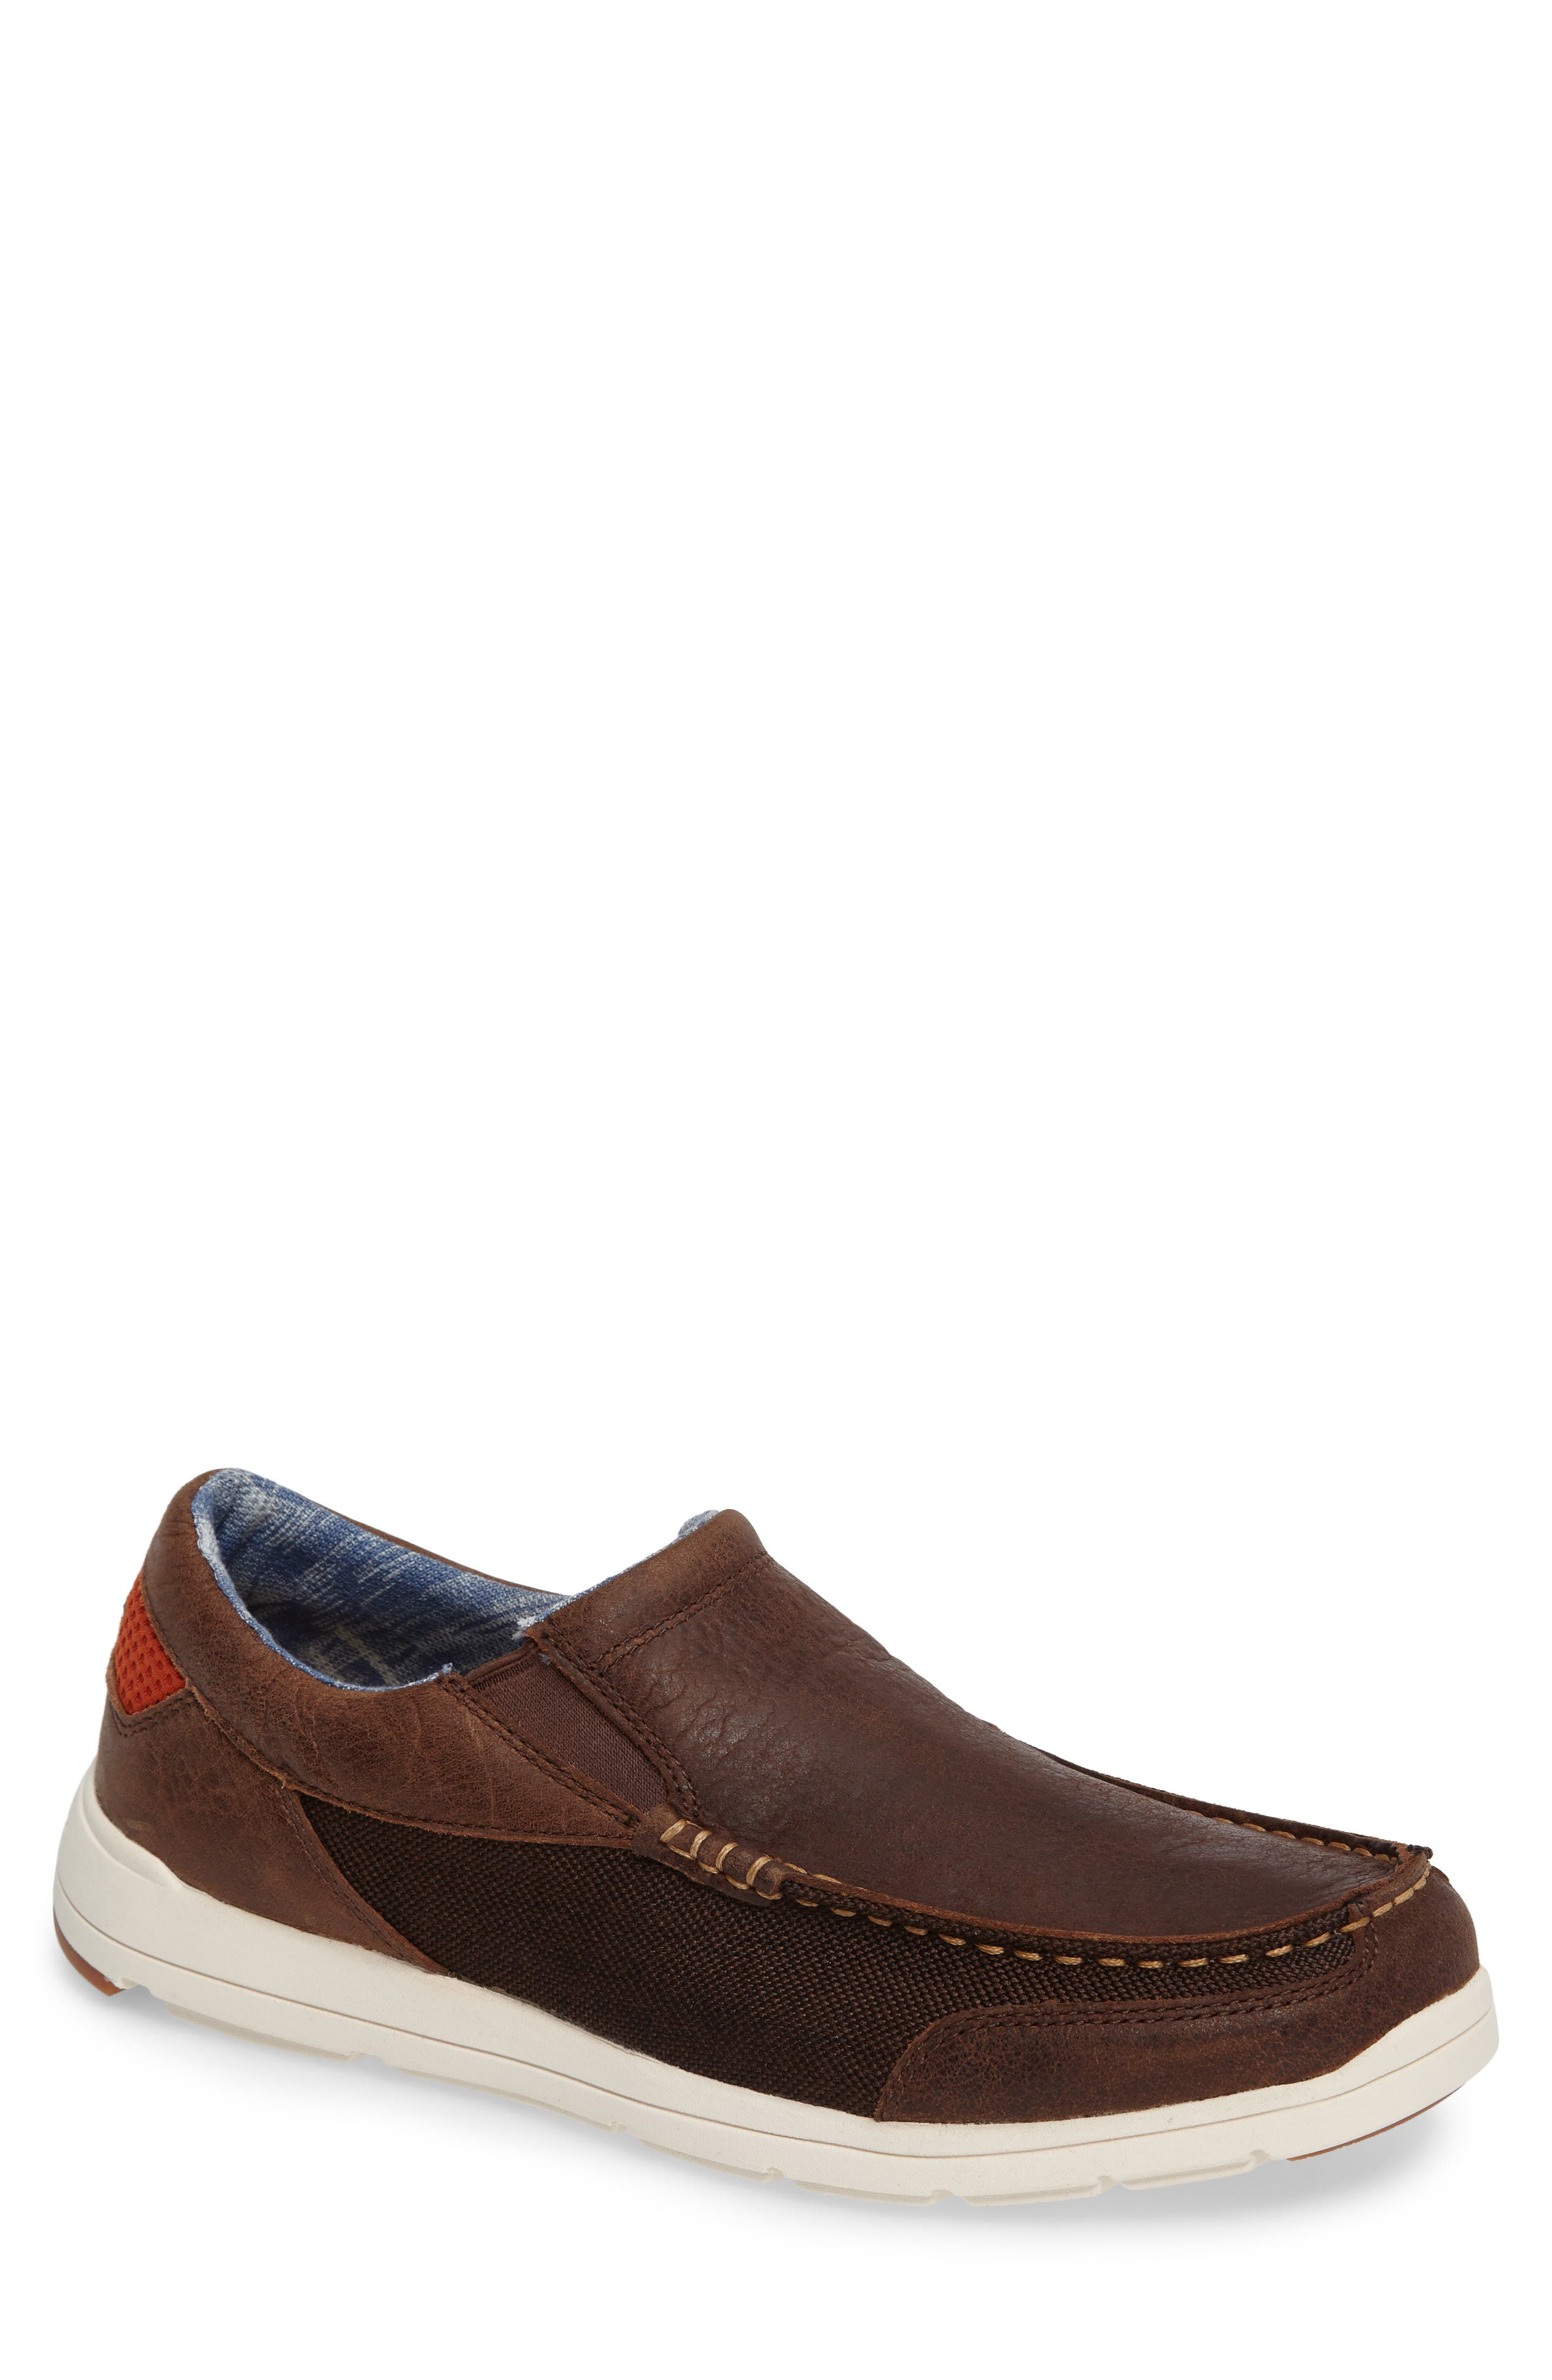 TOMMY BAHAMA Paradise Around Slip-On